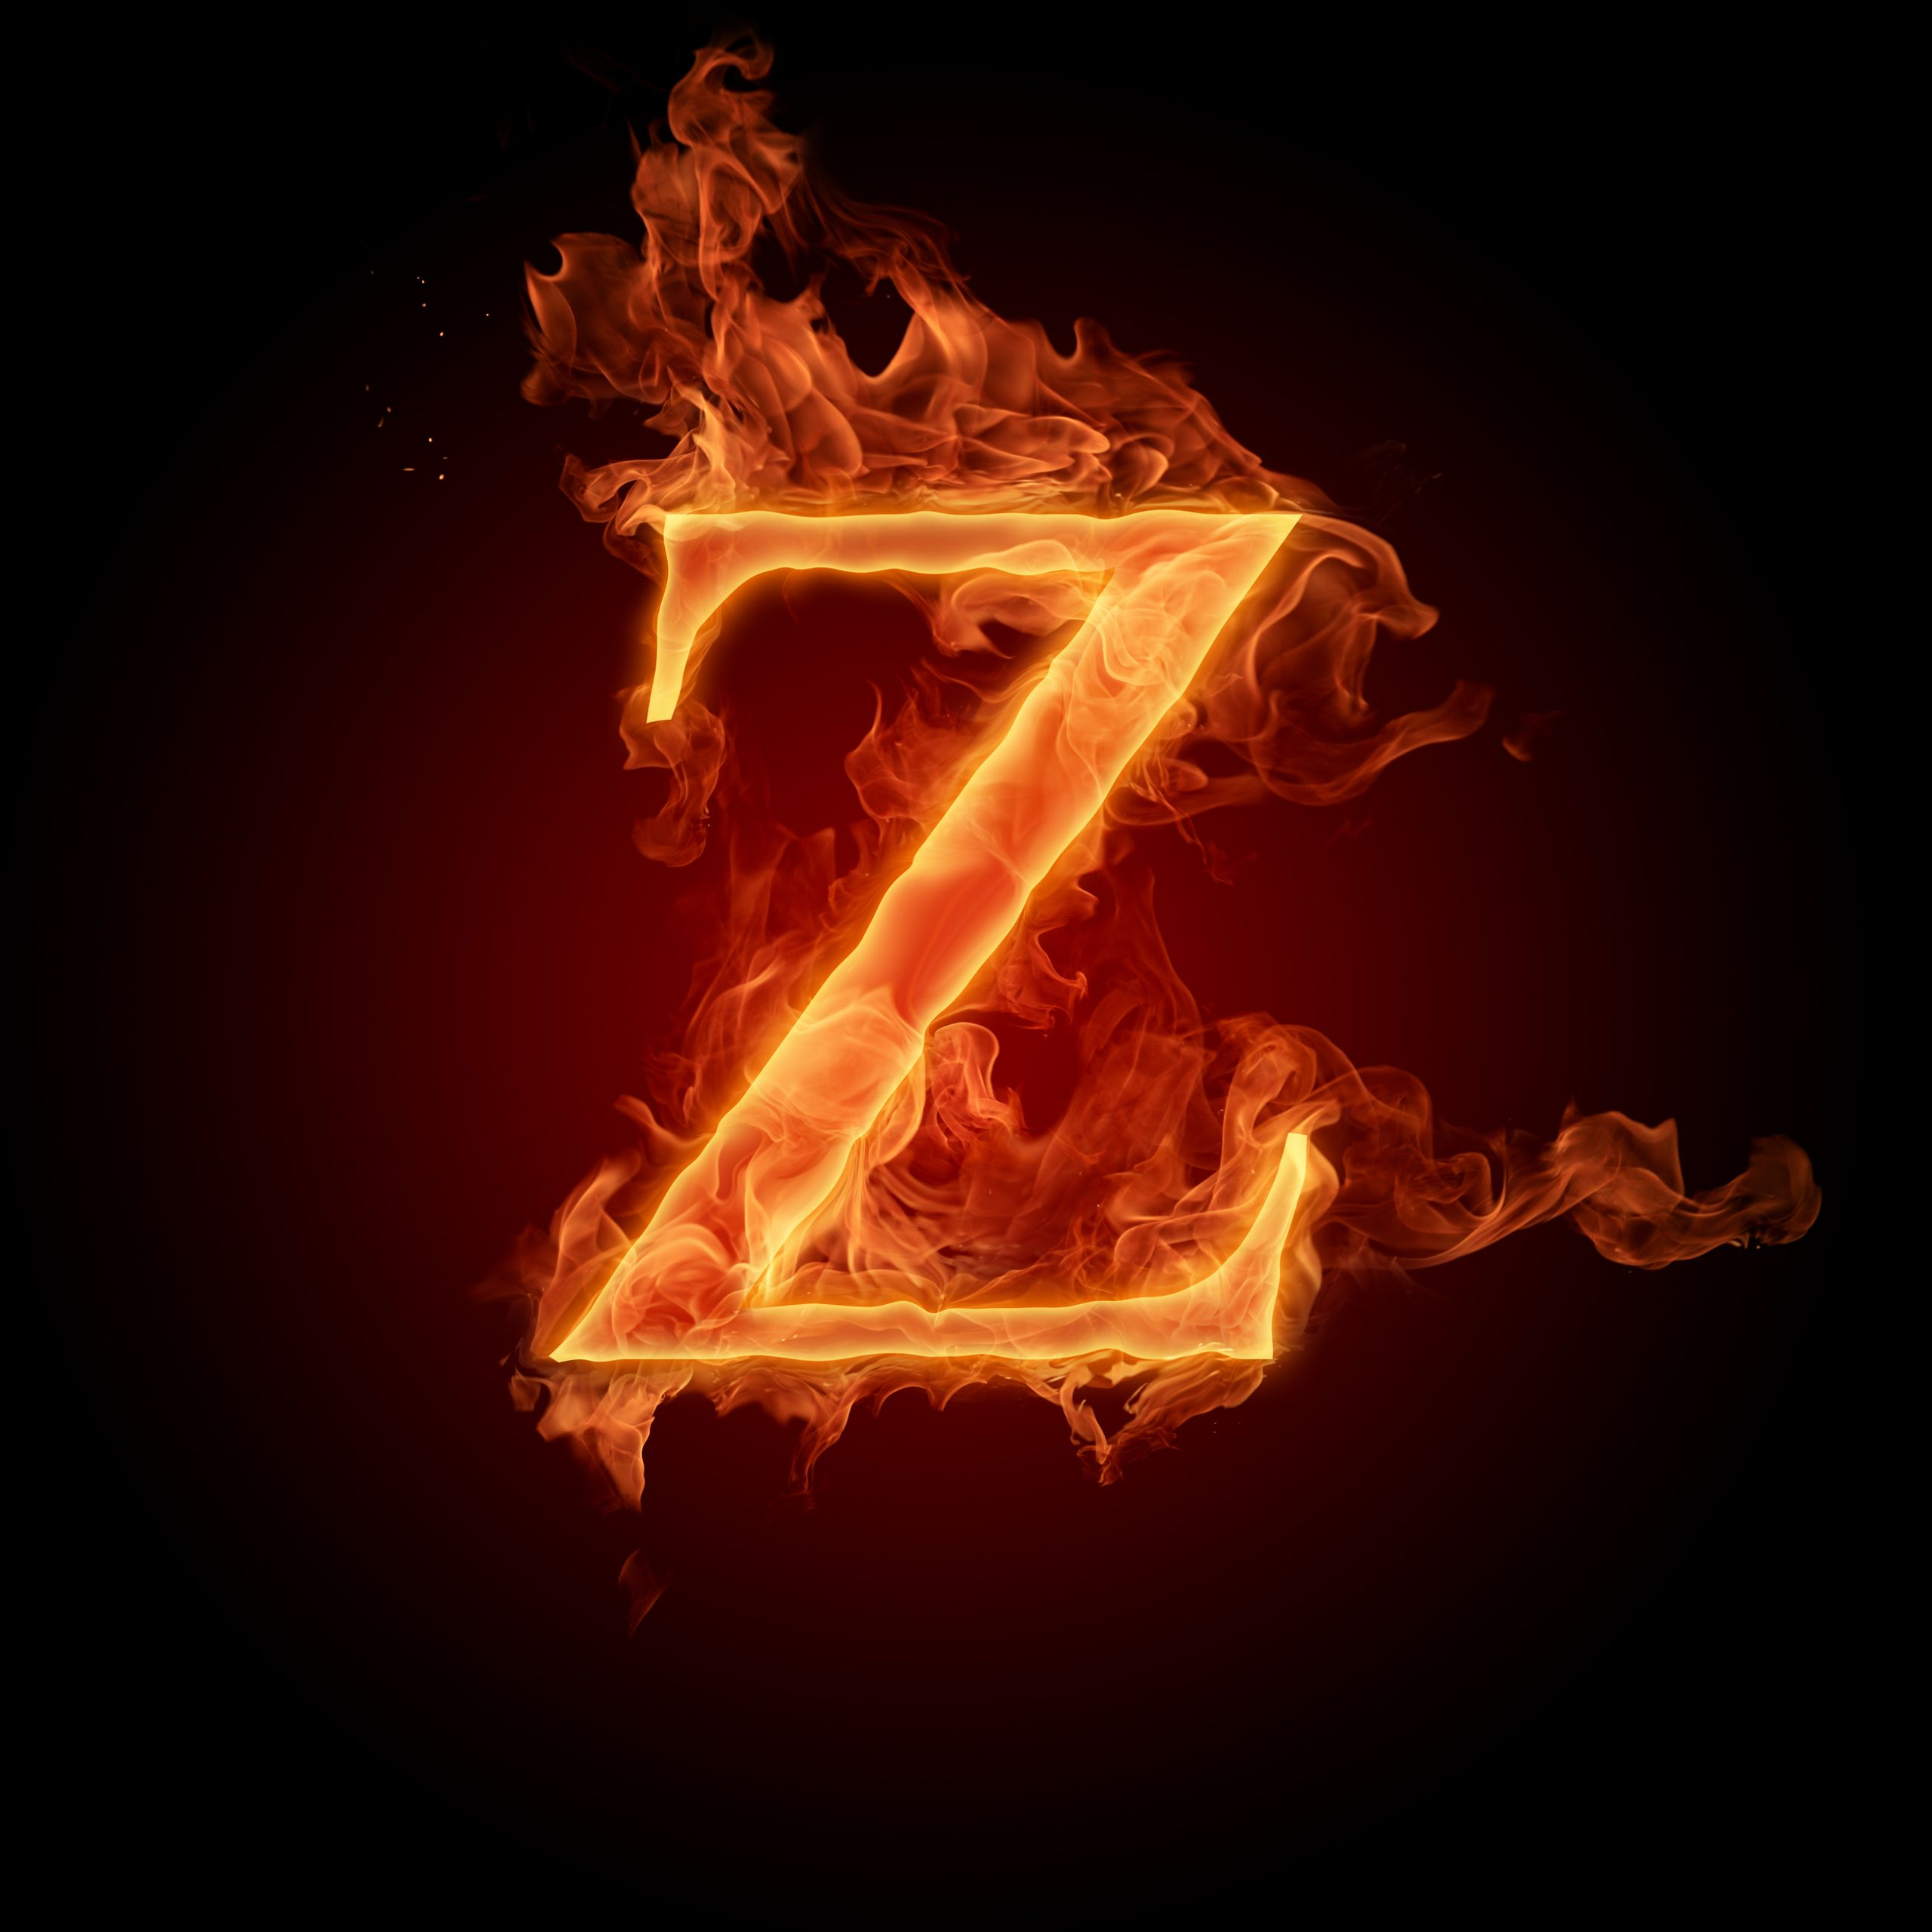 2560x2560 The Letter Z images The letter Z HD wallpaper and background ...